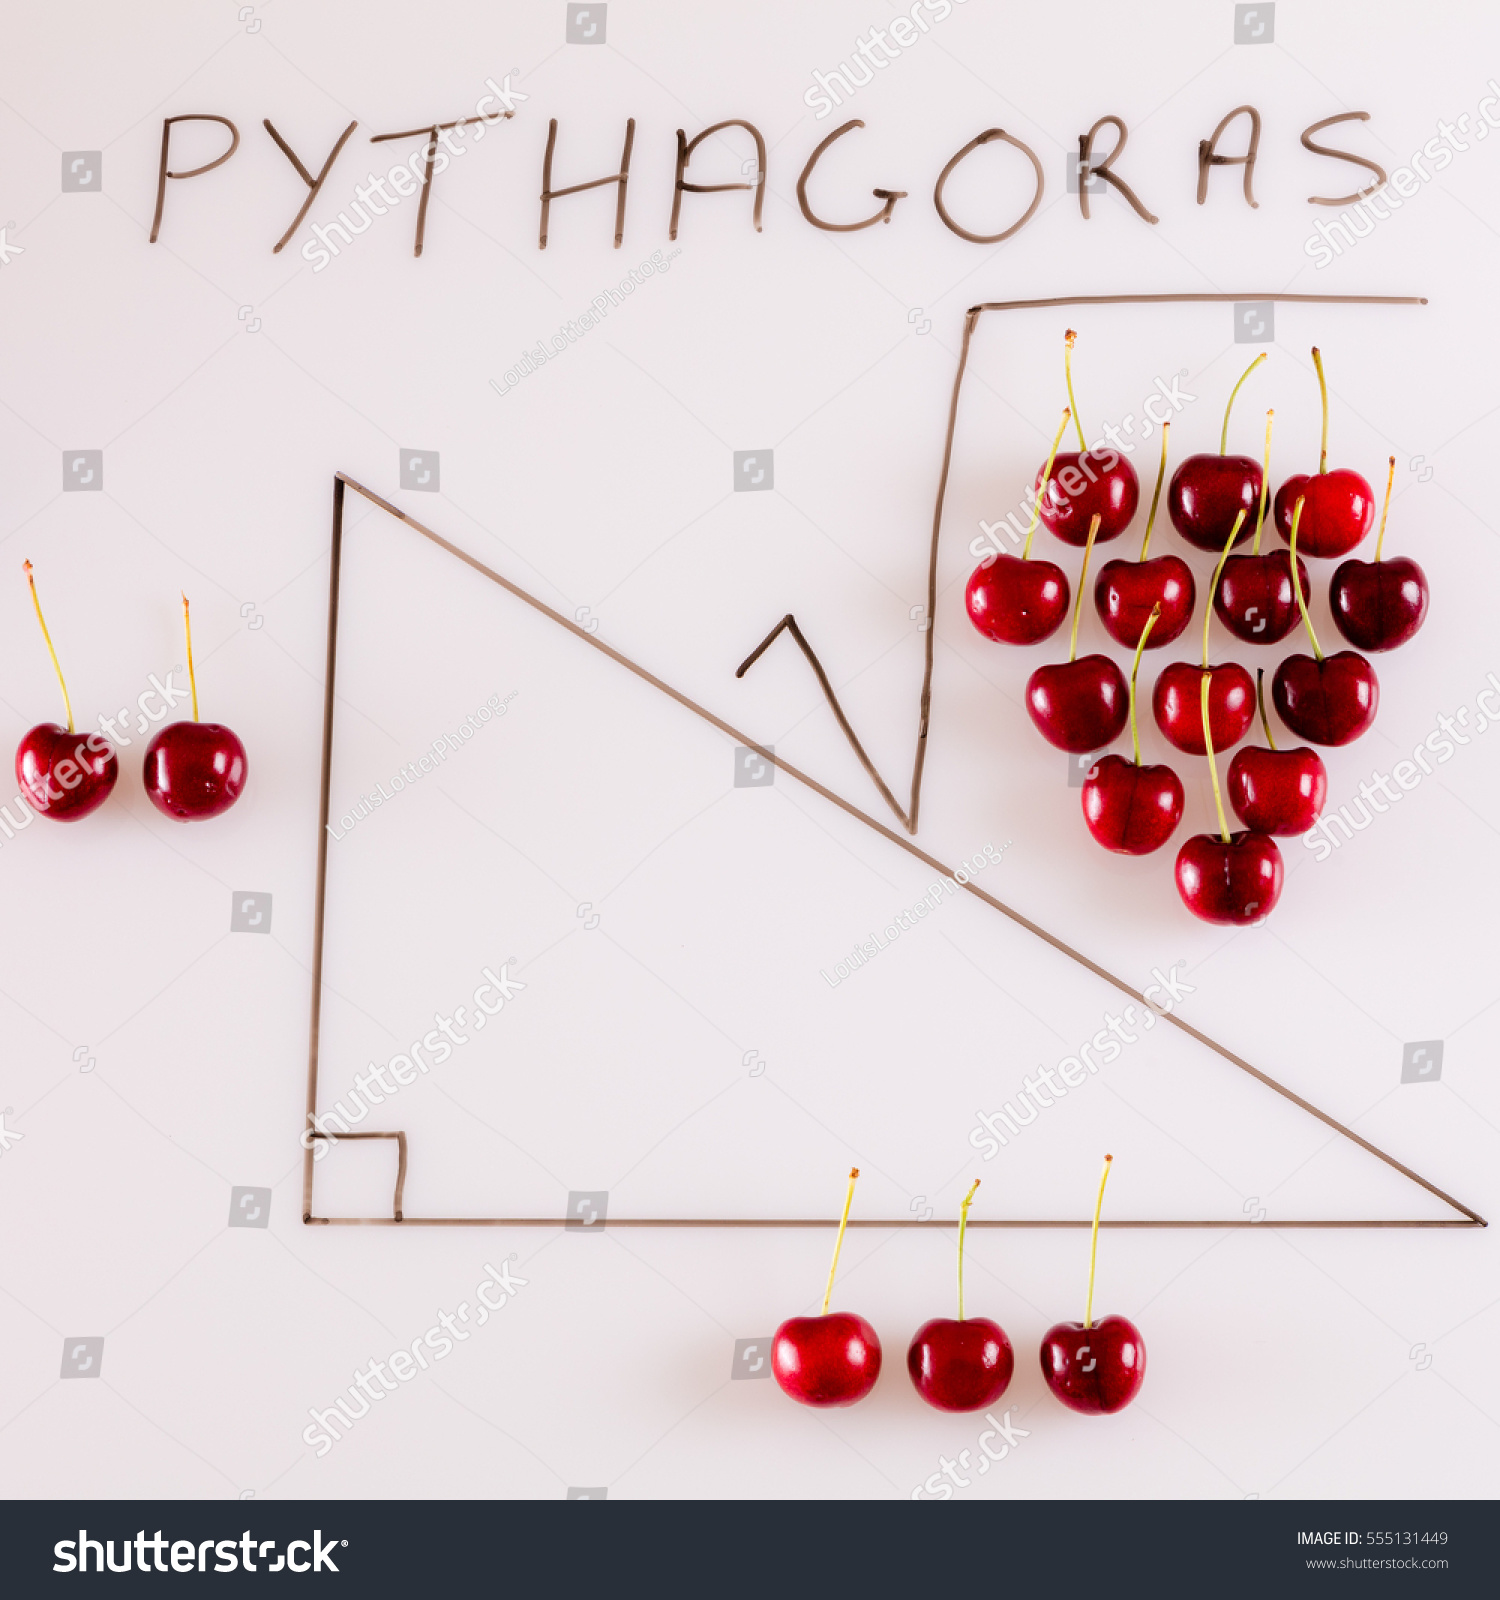 hight resolution of a fun way of illustrating pythagoras theorem by using red cherries and a diagram of